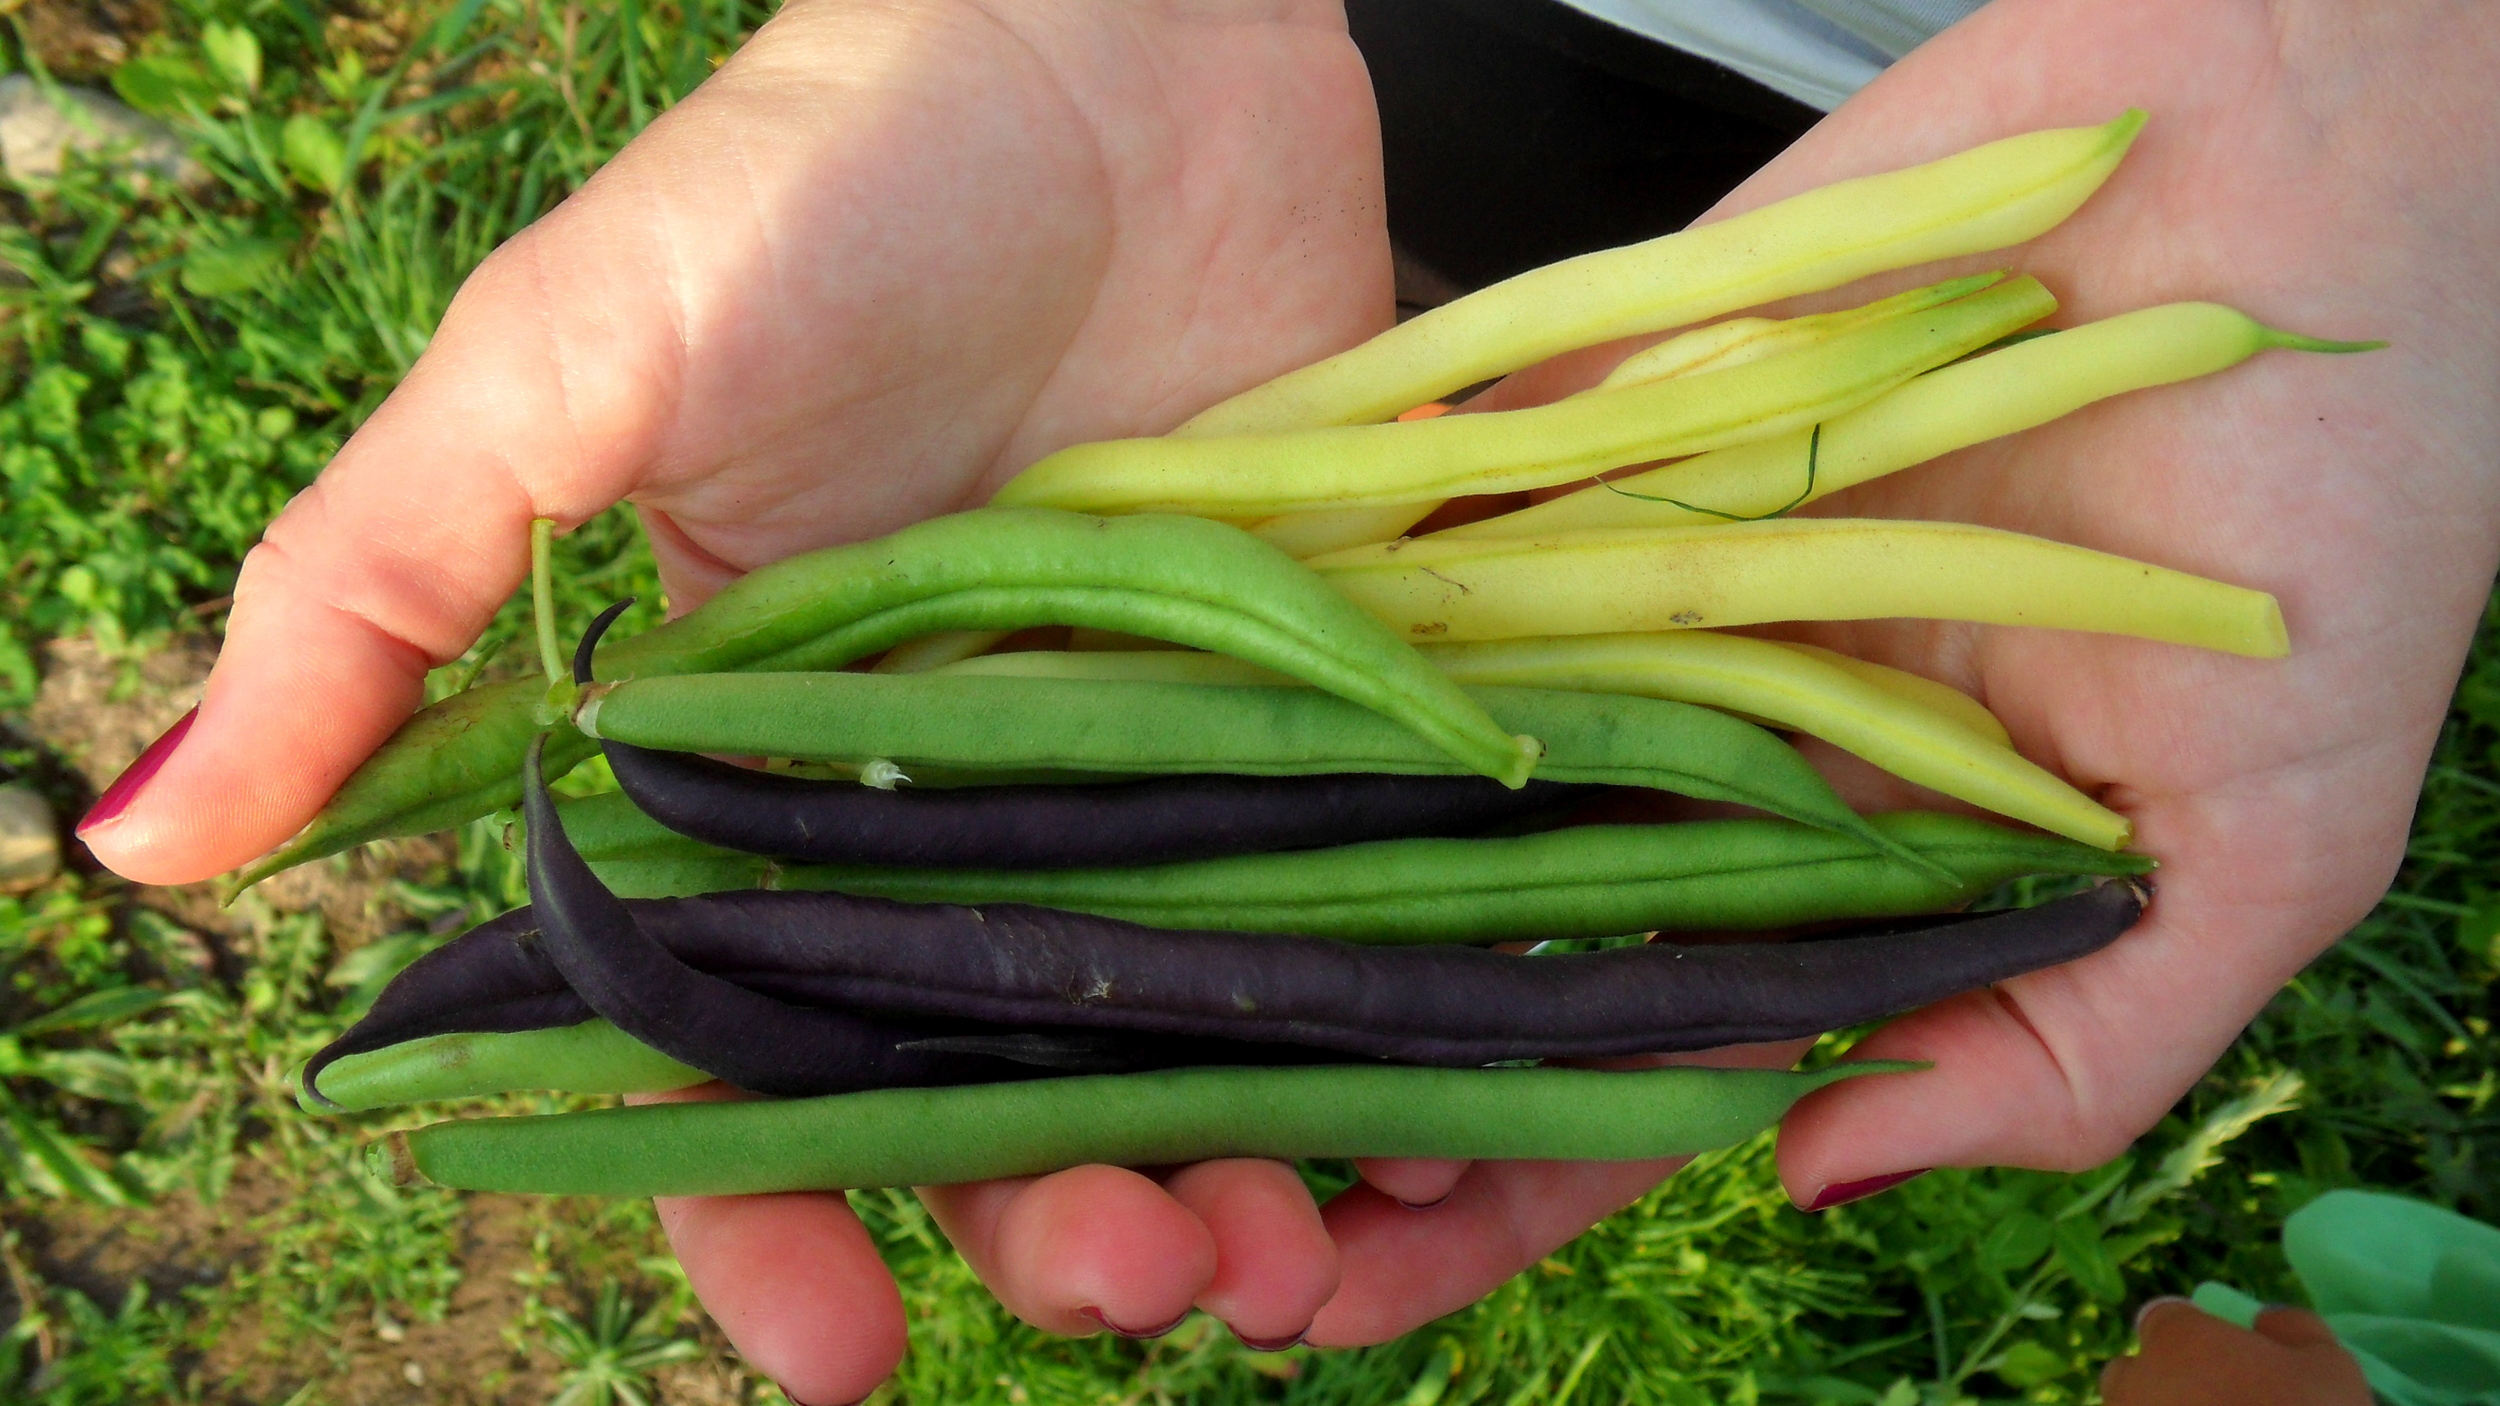 You can't get string beans fresher or purer than this!